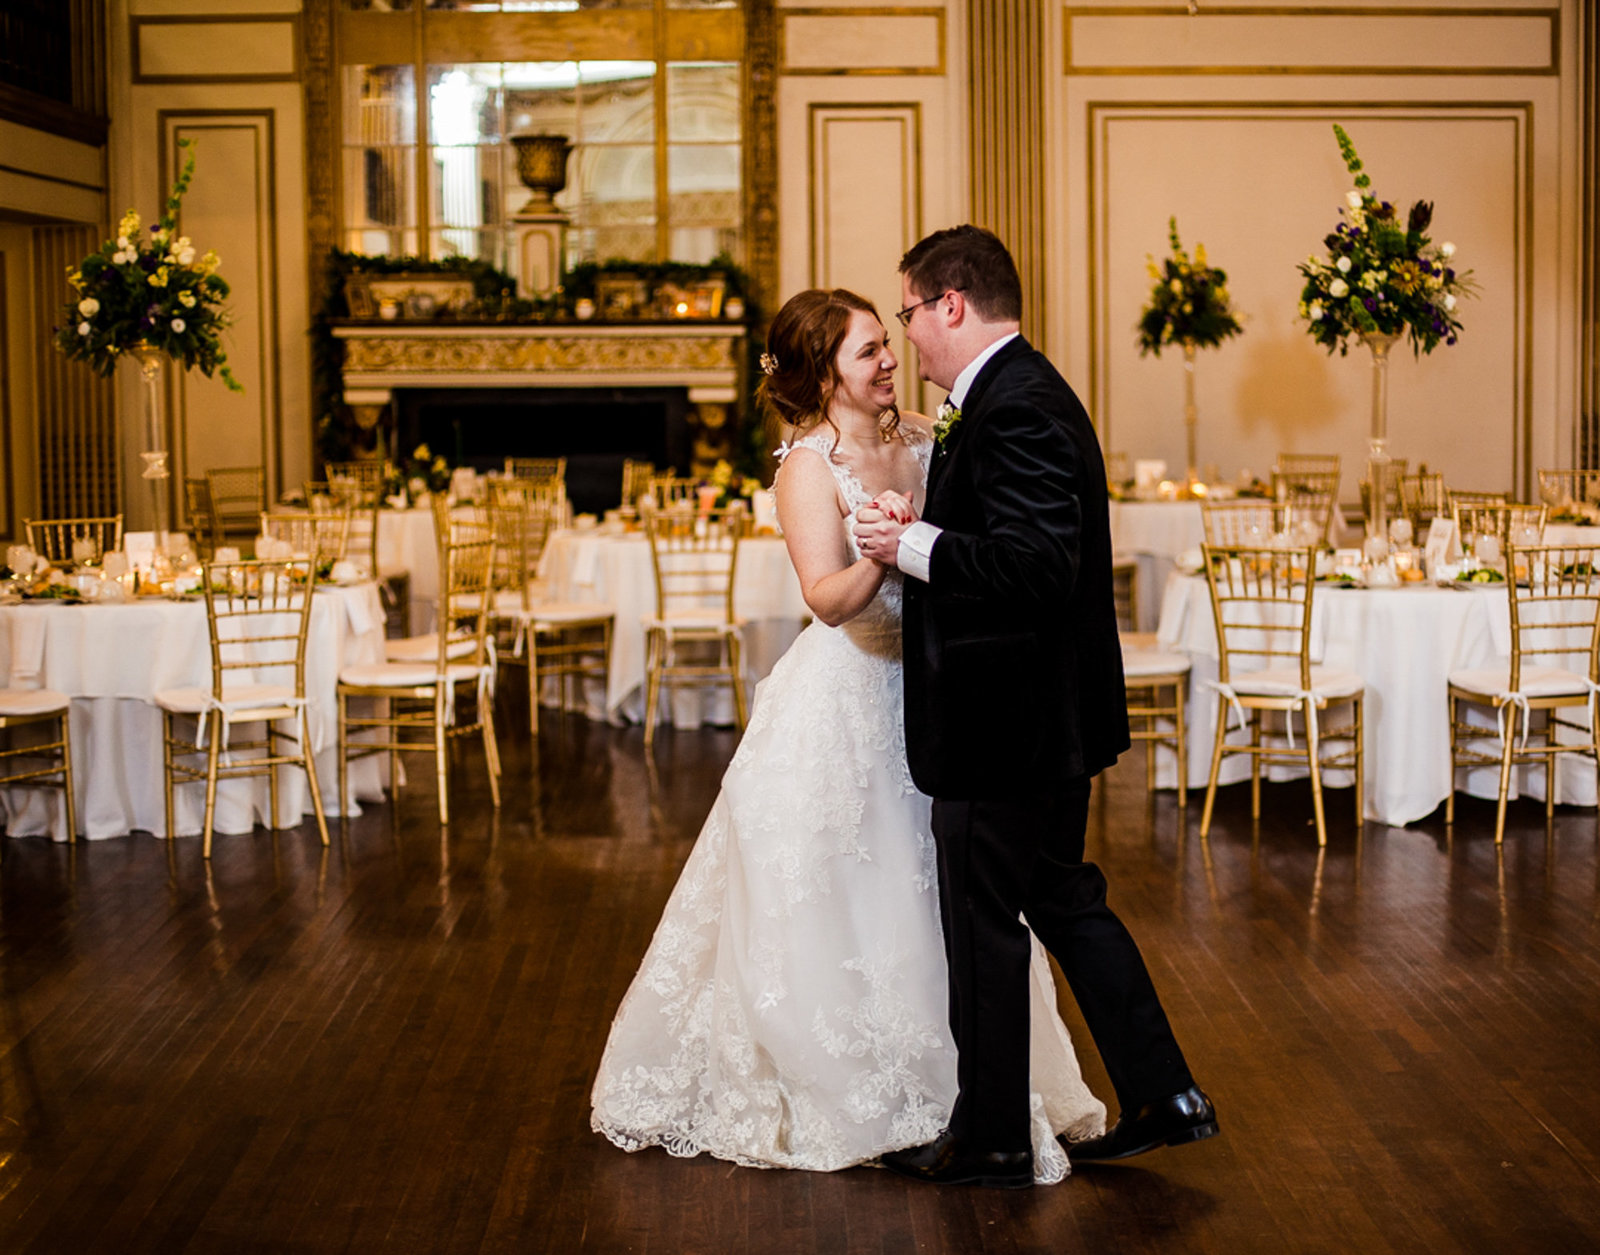 Bride and groom practice forst dance at the George Washington Hotel's Grand Ballroom